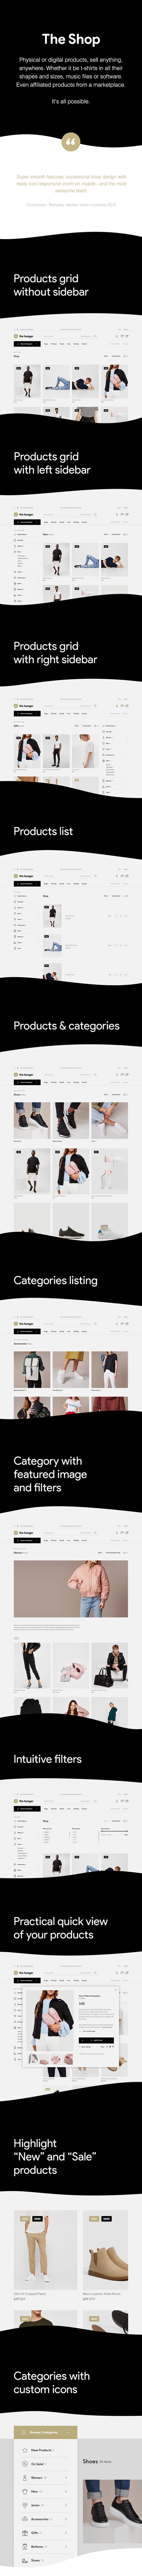 The Hanger - Modern Classic WooCommerce Theme - 3